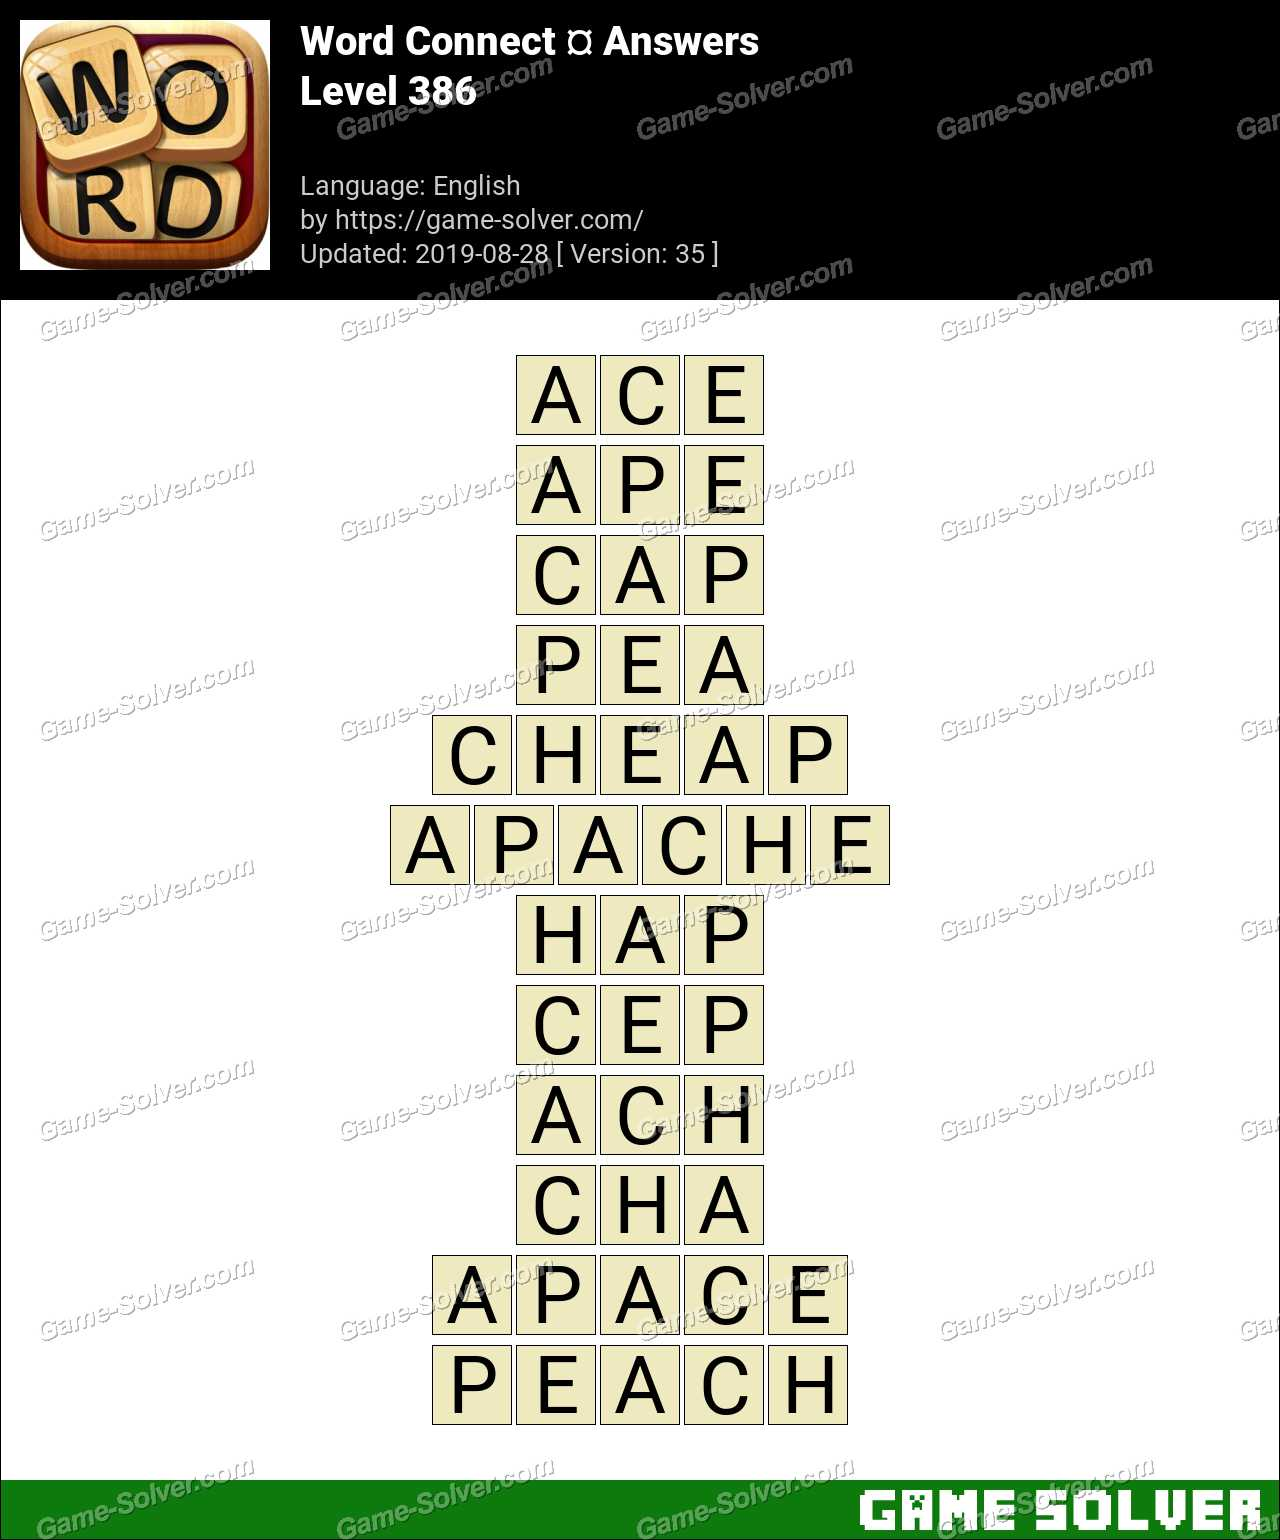 Word Connect Level 386 Answers